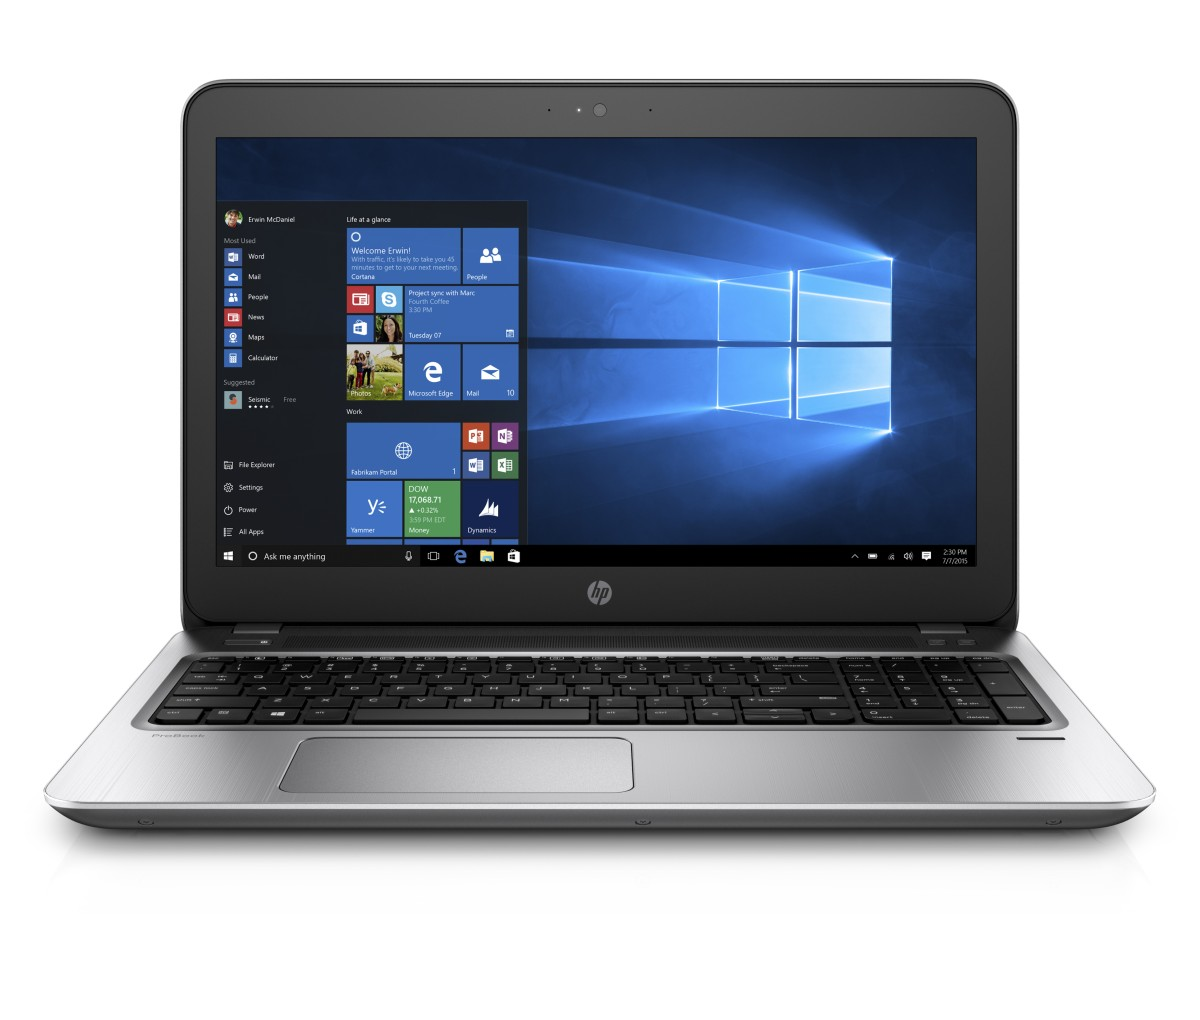 HP ProBook 450 G4 FHD/i3-7100U/4G/500/W10P+Office